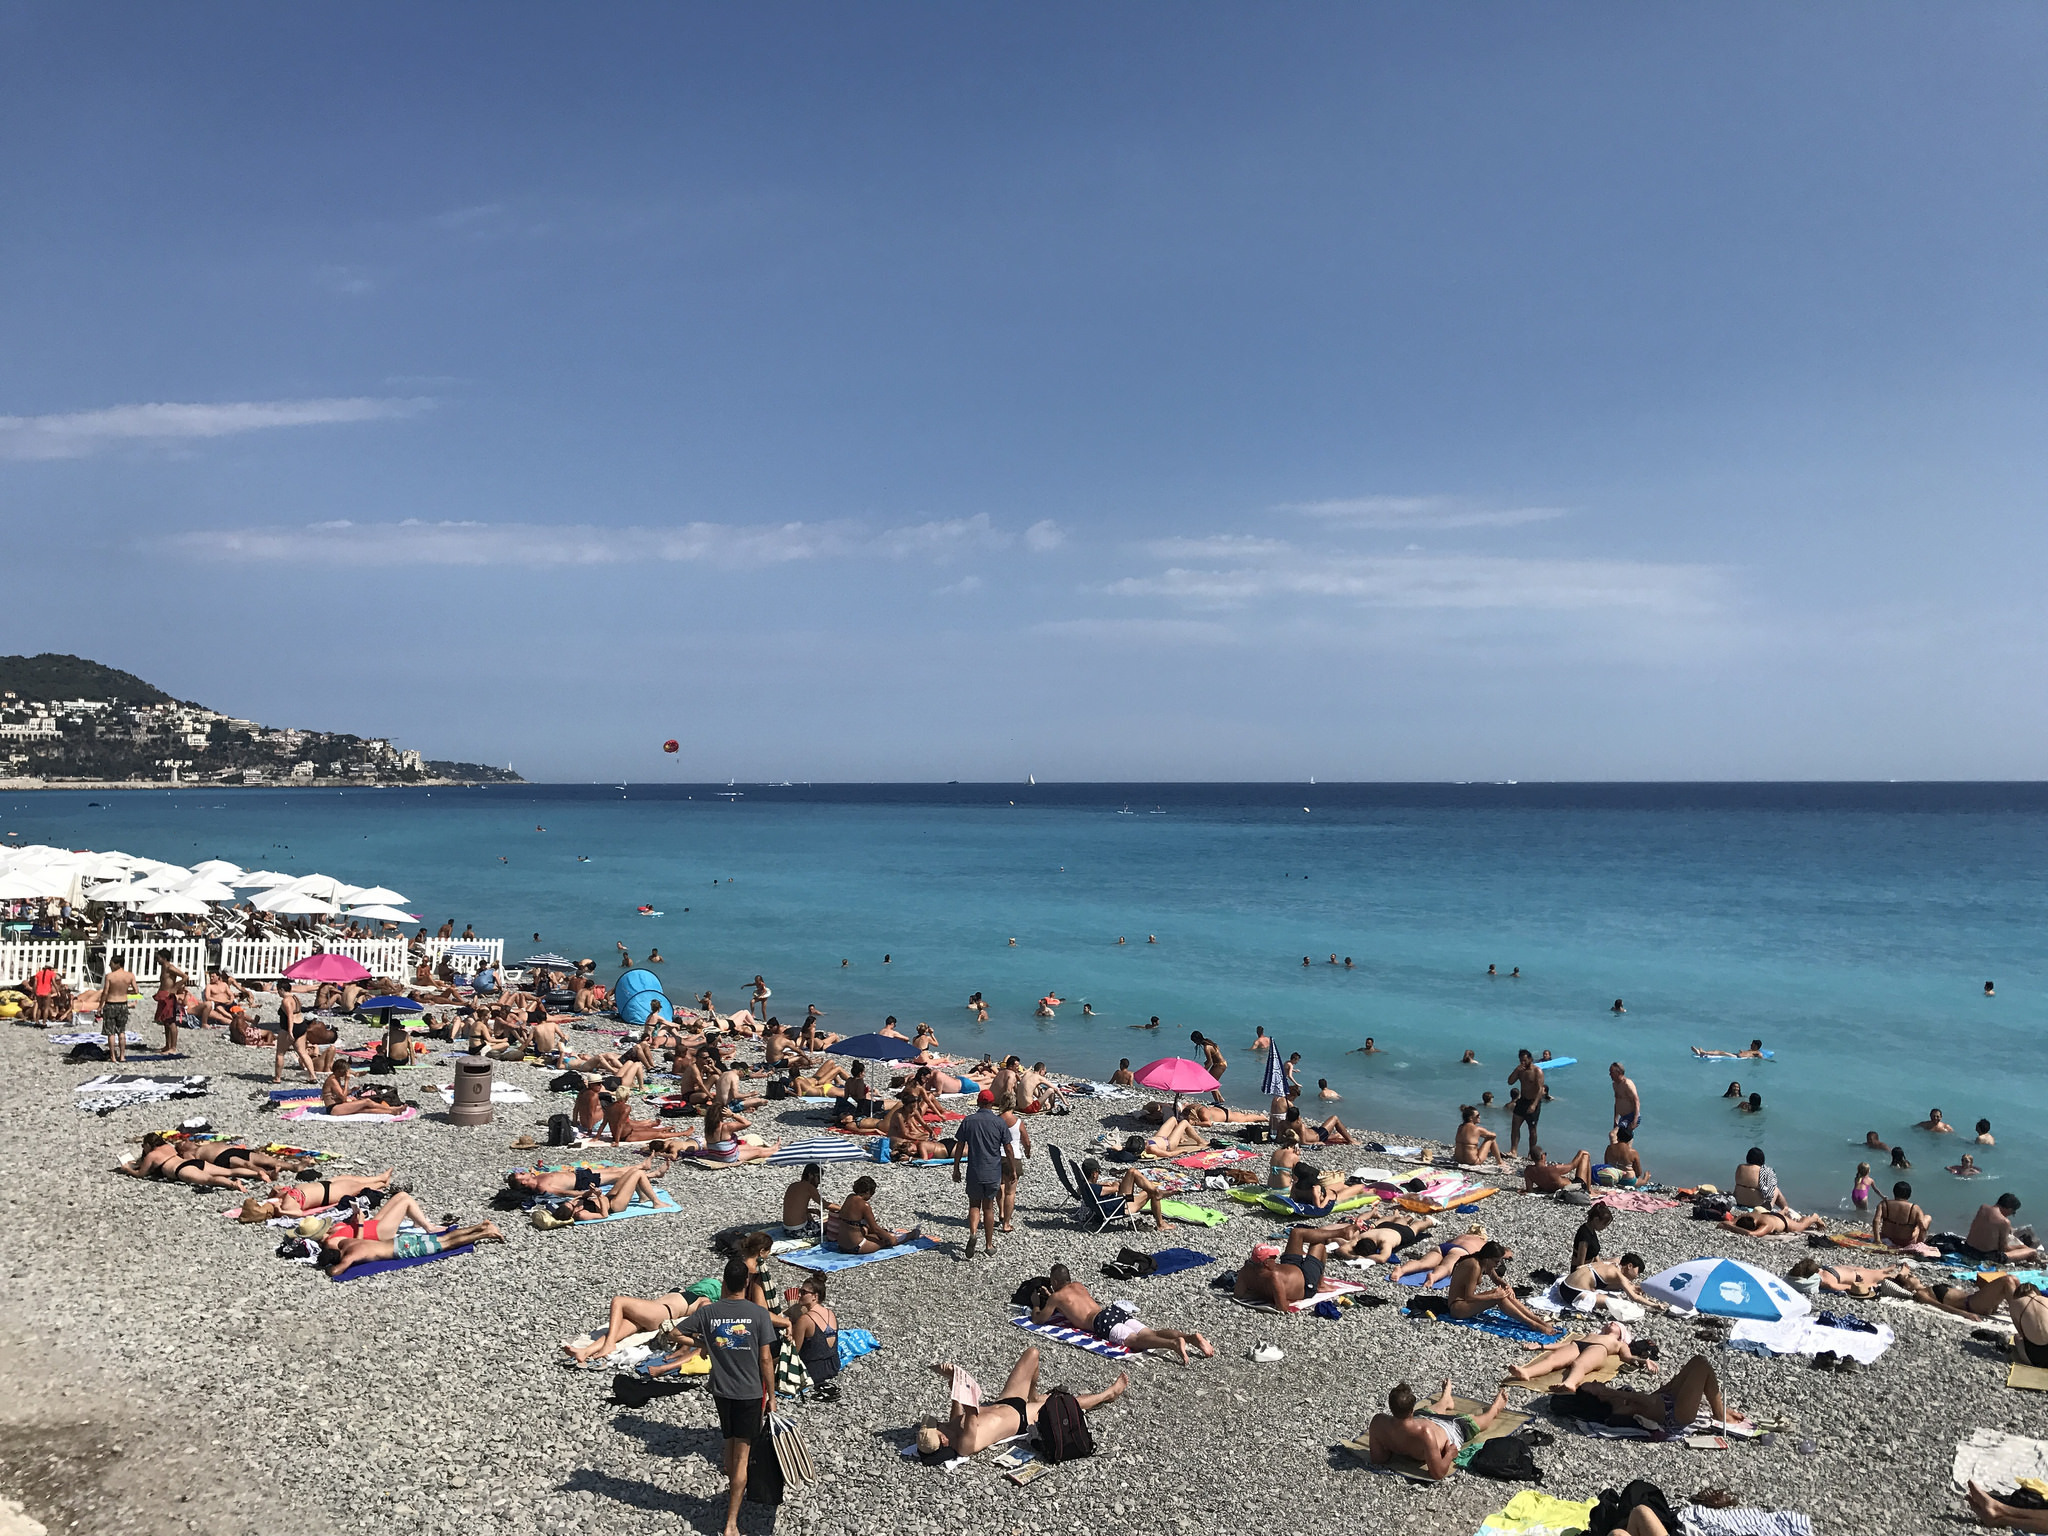 Club Nautique De Nice 13 top beaches in nice, from lively to secluded spots